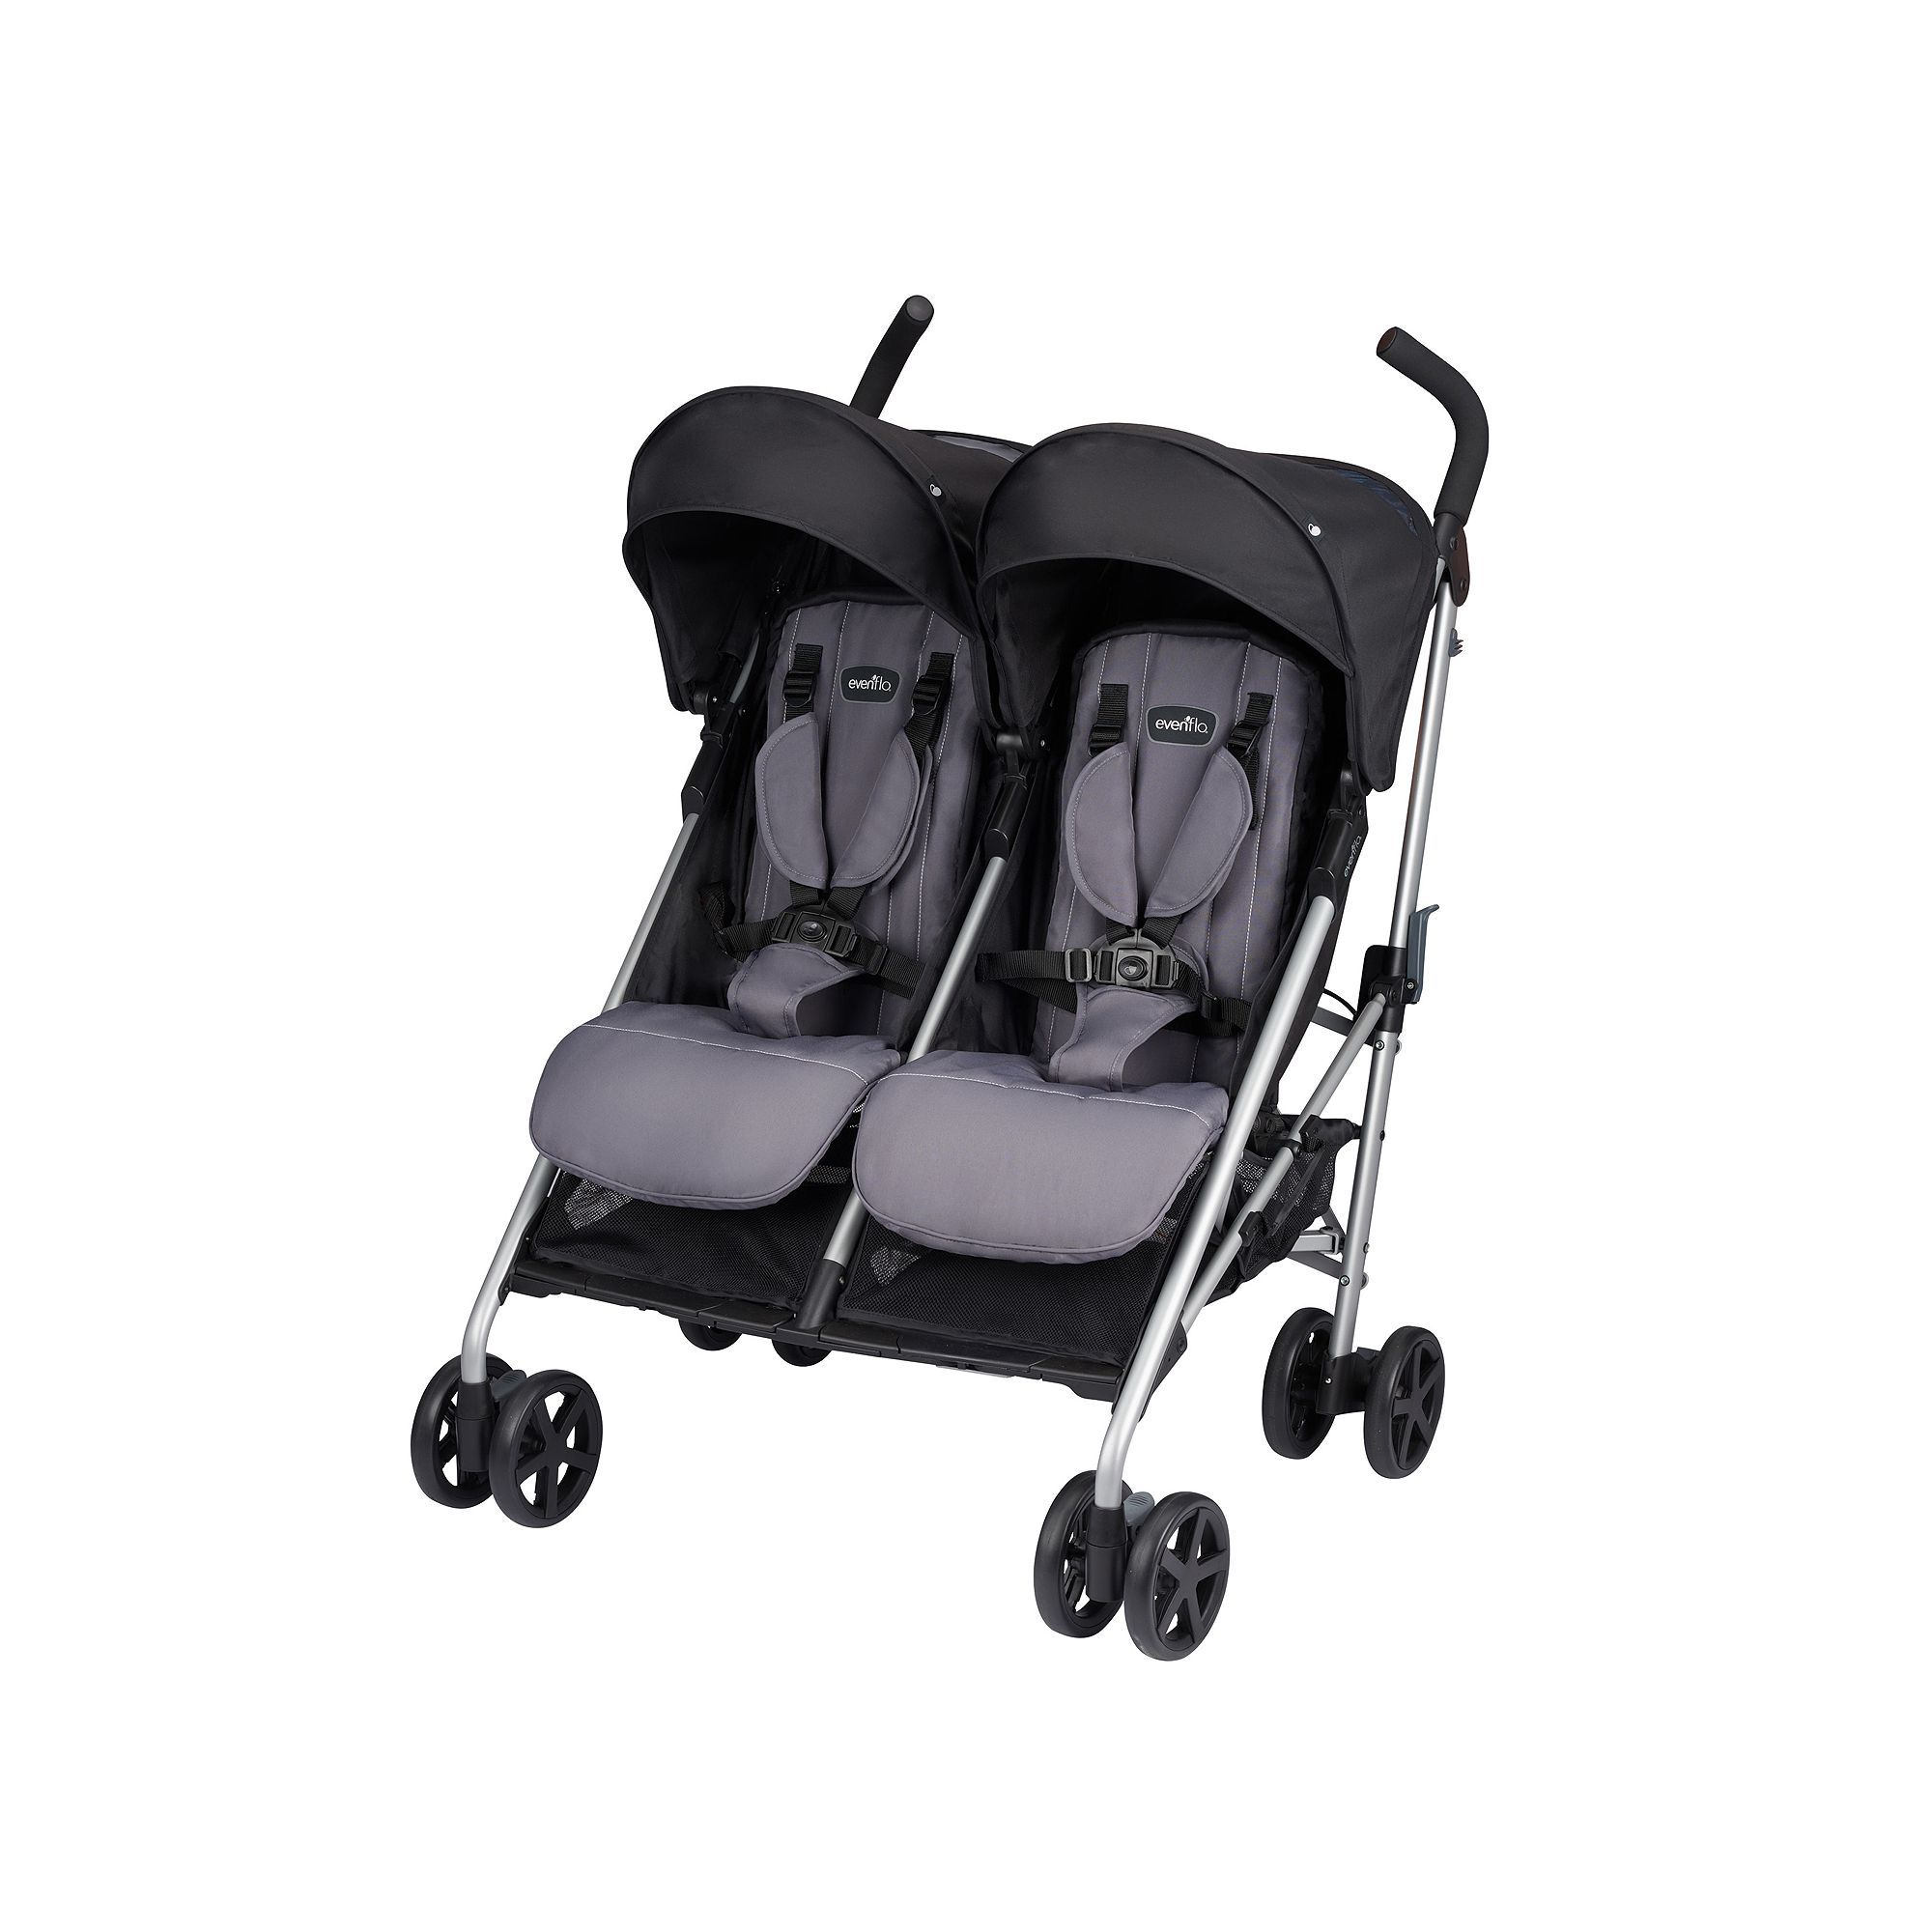 EvenFlo Minno Twin Double Stroller, Grey Double